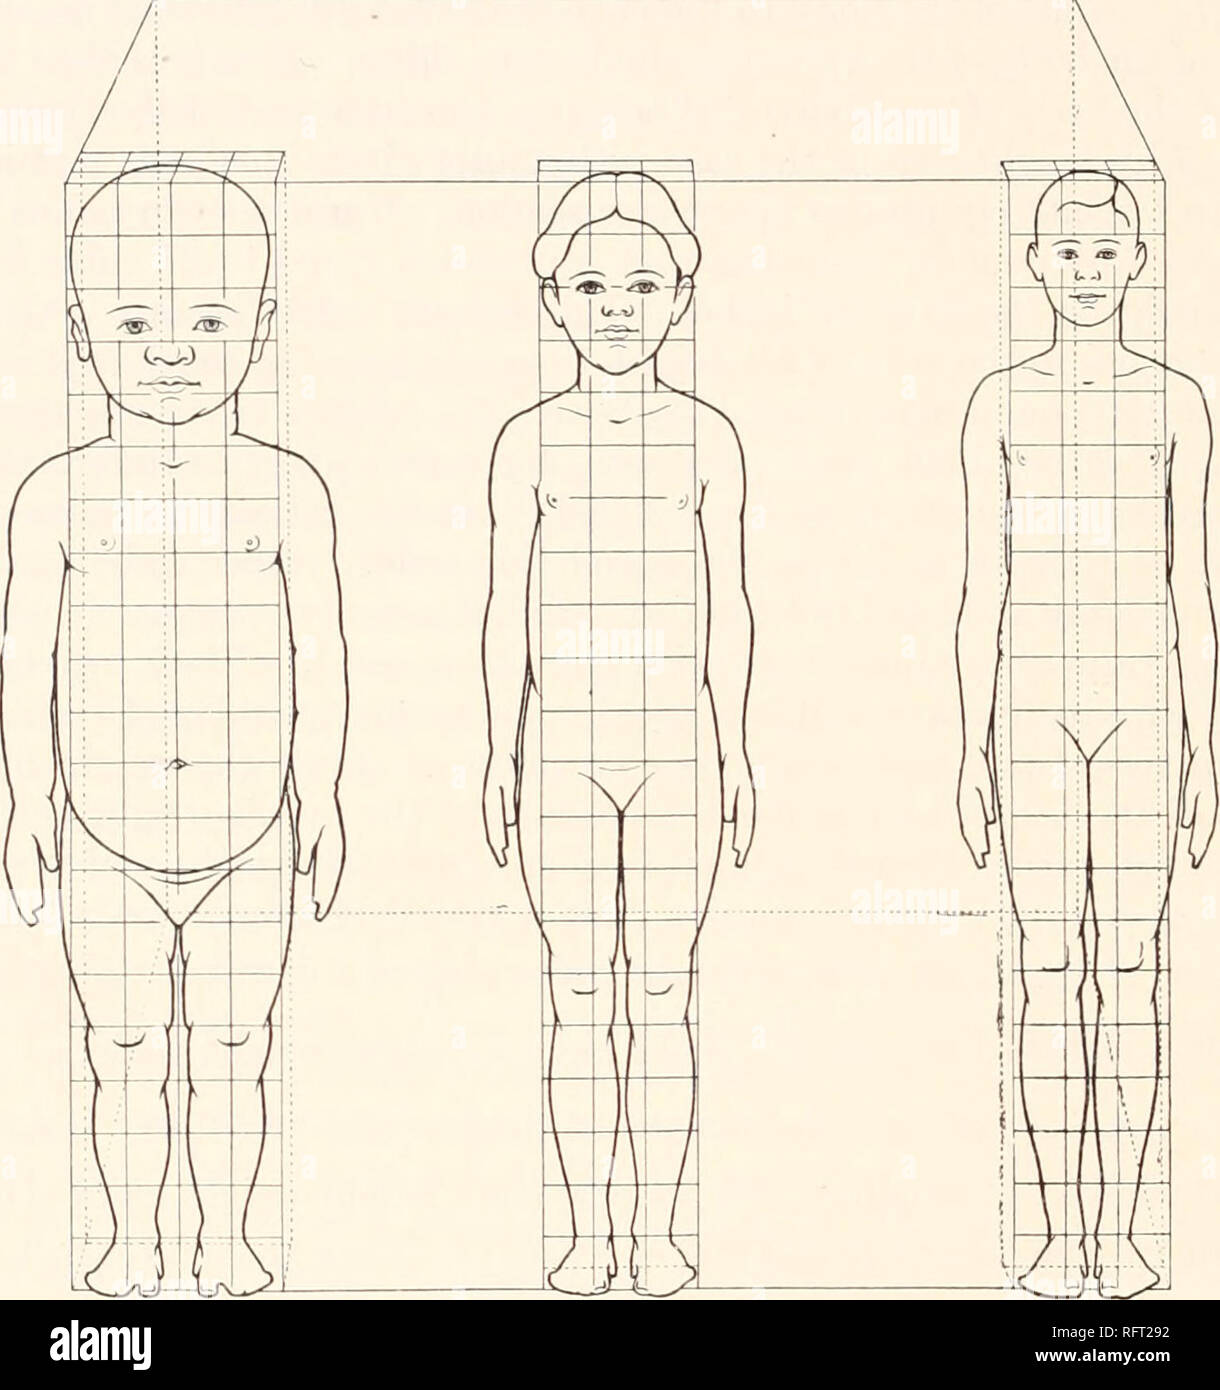 . Carnegie Institution of Washington publication. 490 HEIGHT AND WEIGHT IN RELATION TO BUILD imates 91.8 per cent of the thousandth part of the cube of the stature. In an adult male 68 inches tall it usually approximates 47.8 per cent at 30 to 35 years of age. We have used the inch-pound units because a large part of the best statistical studies on height and weight have been made in England and America with the use of these units. For the sake of uniformity in this article we have made use of the inch-pound height-weight index even when dealing with material expressed in metric system units.  - Stock Image